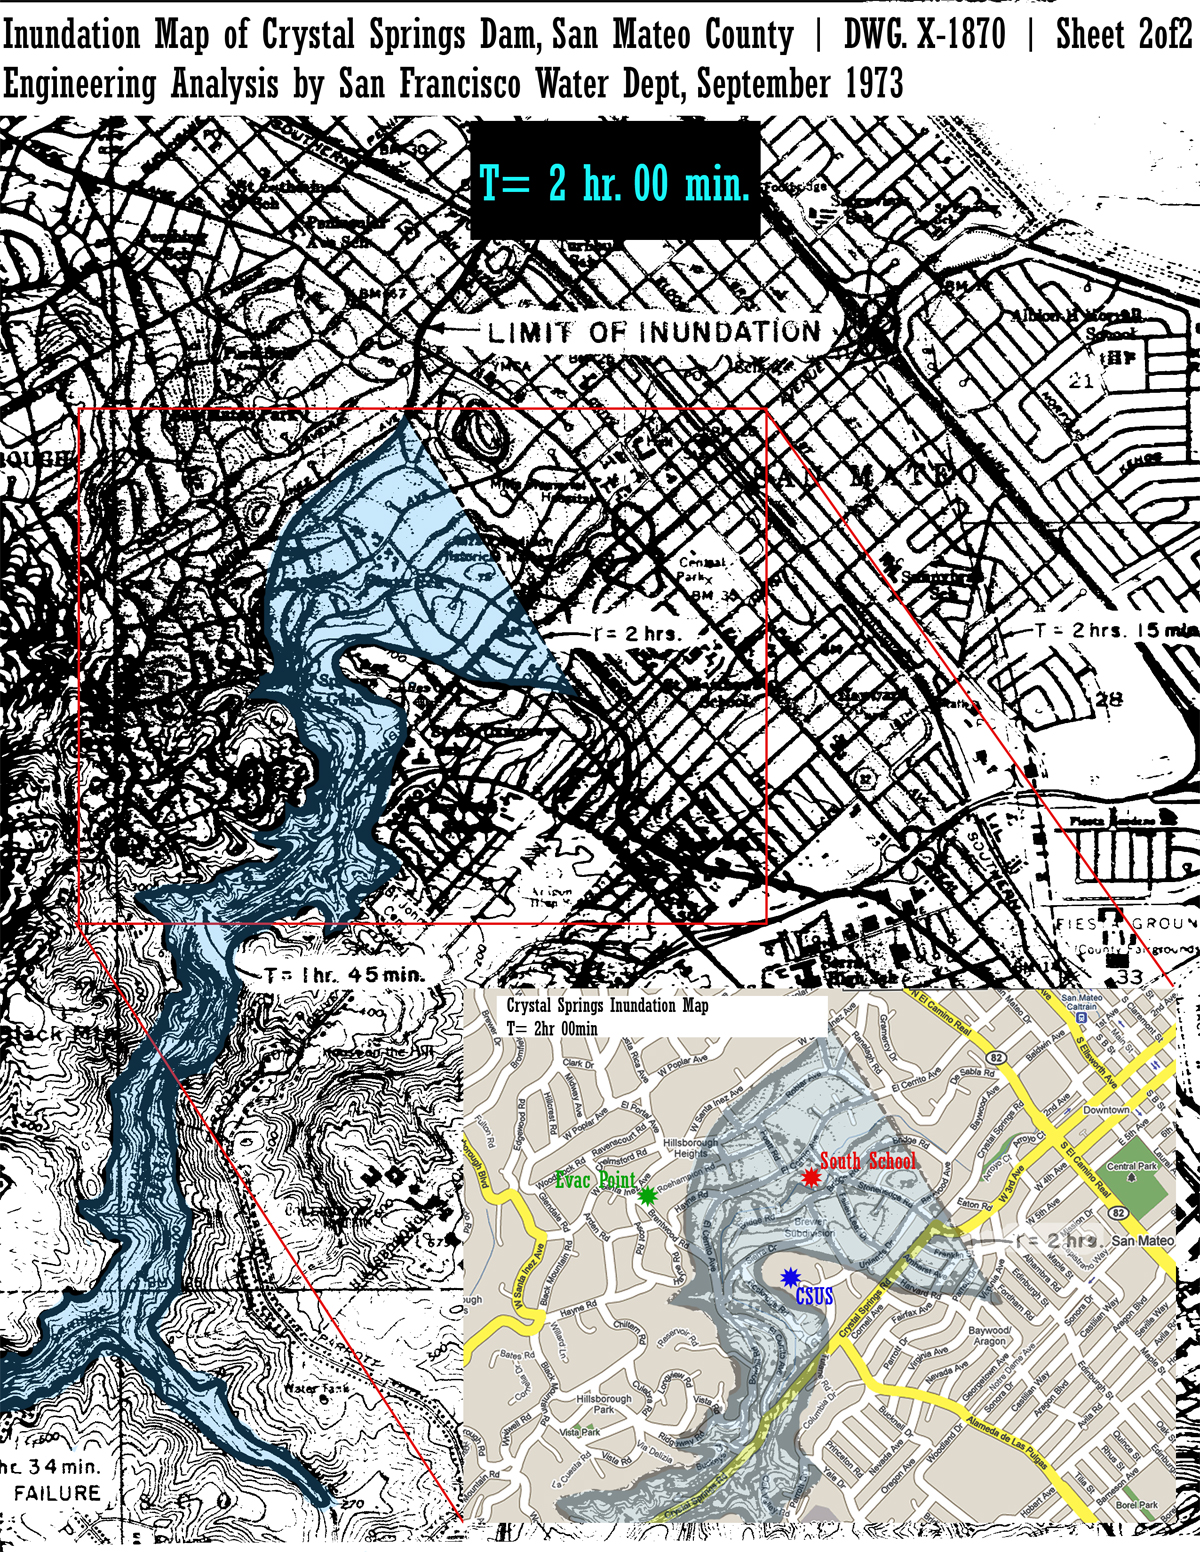 Crystal Springs Inundation Map South School Area